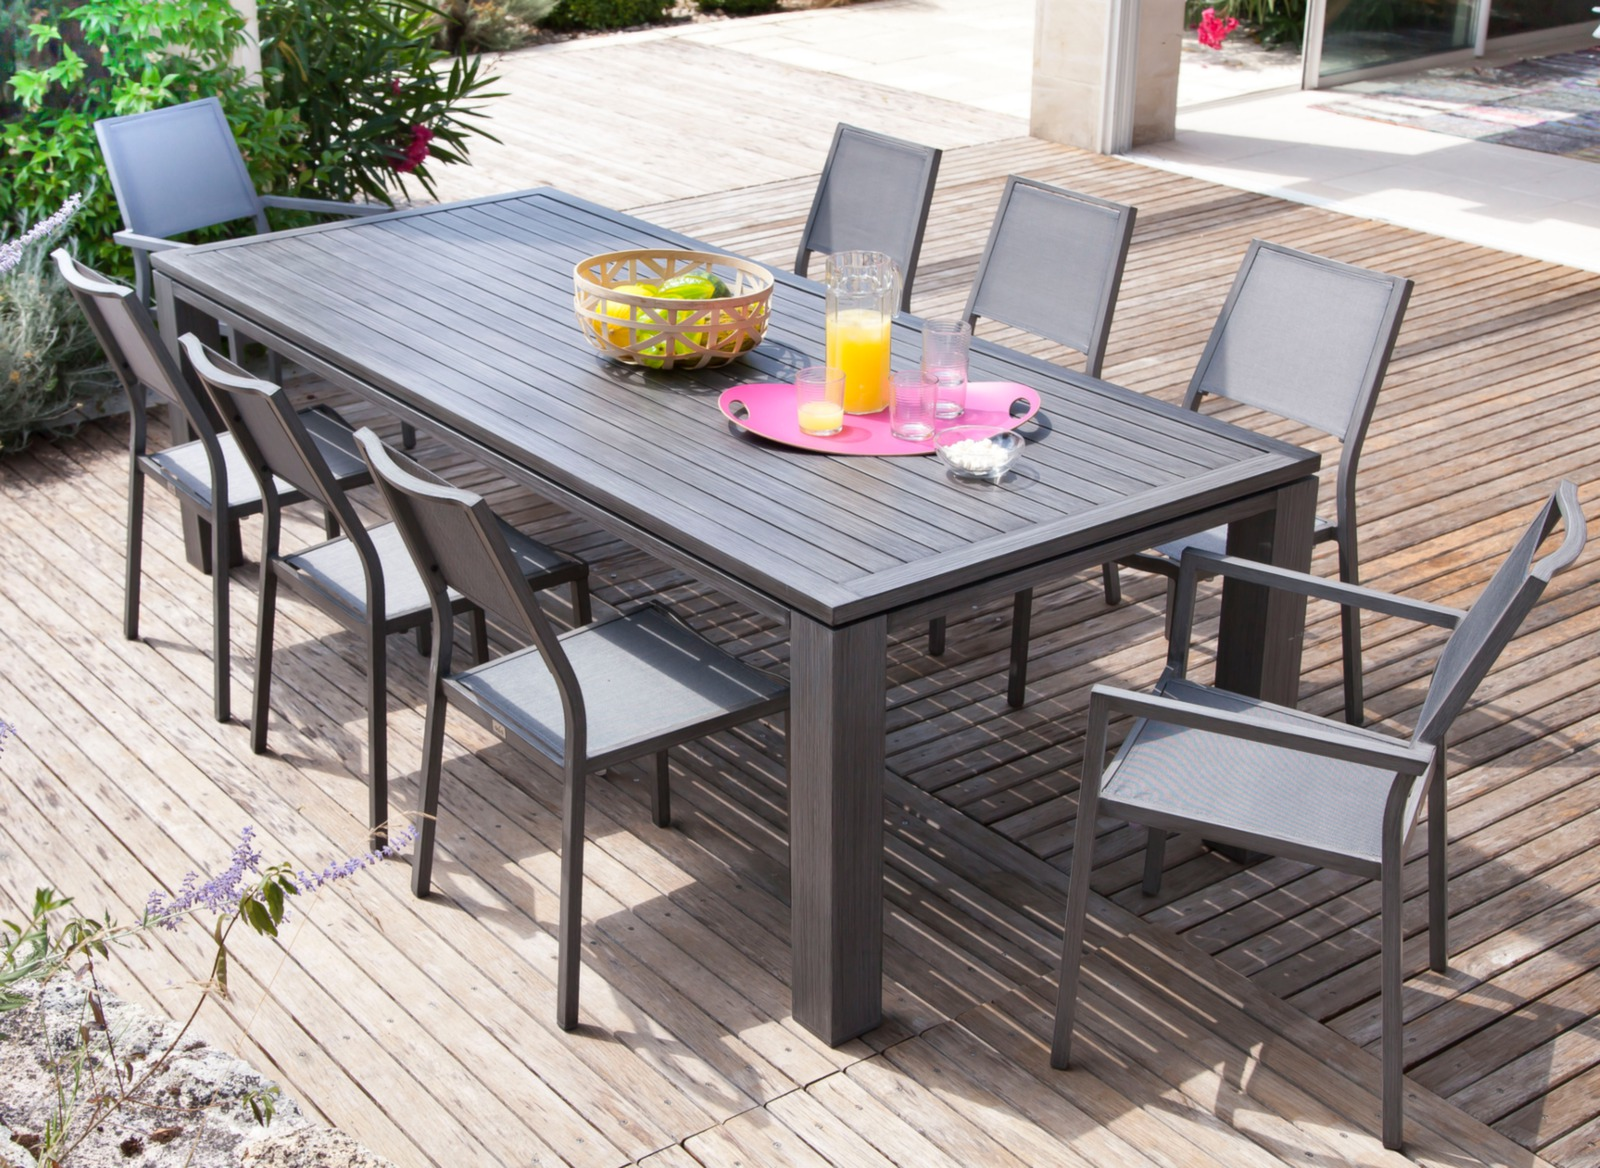 Salon de jardin avec grande table promotion proloisirs for Ensemble table extensible et chaise